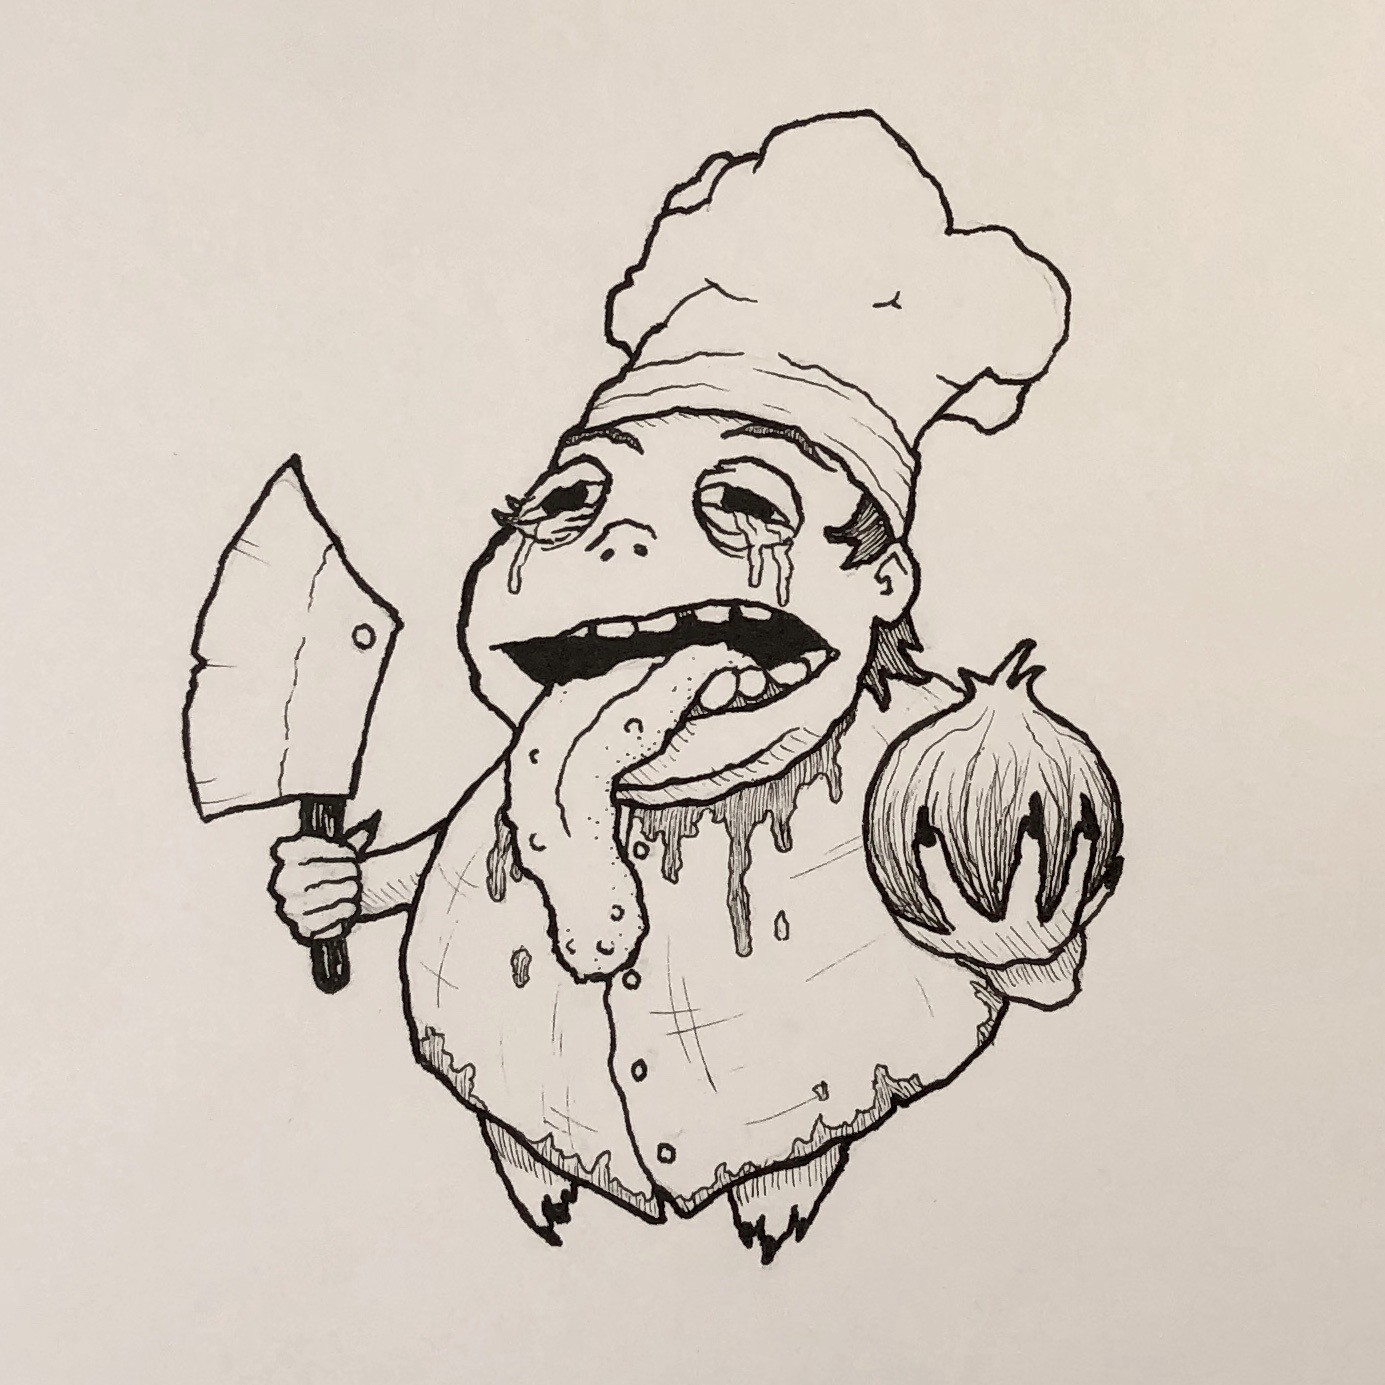 Inktober Day 24 - Chop